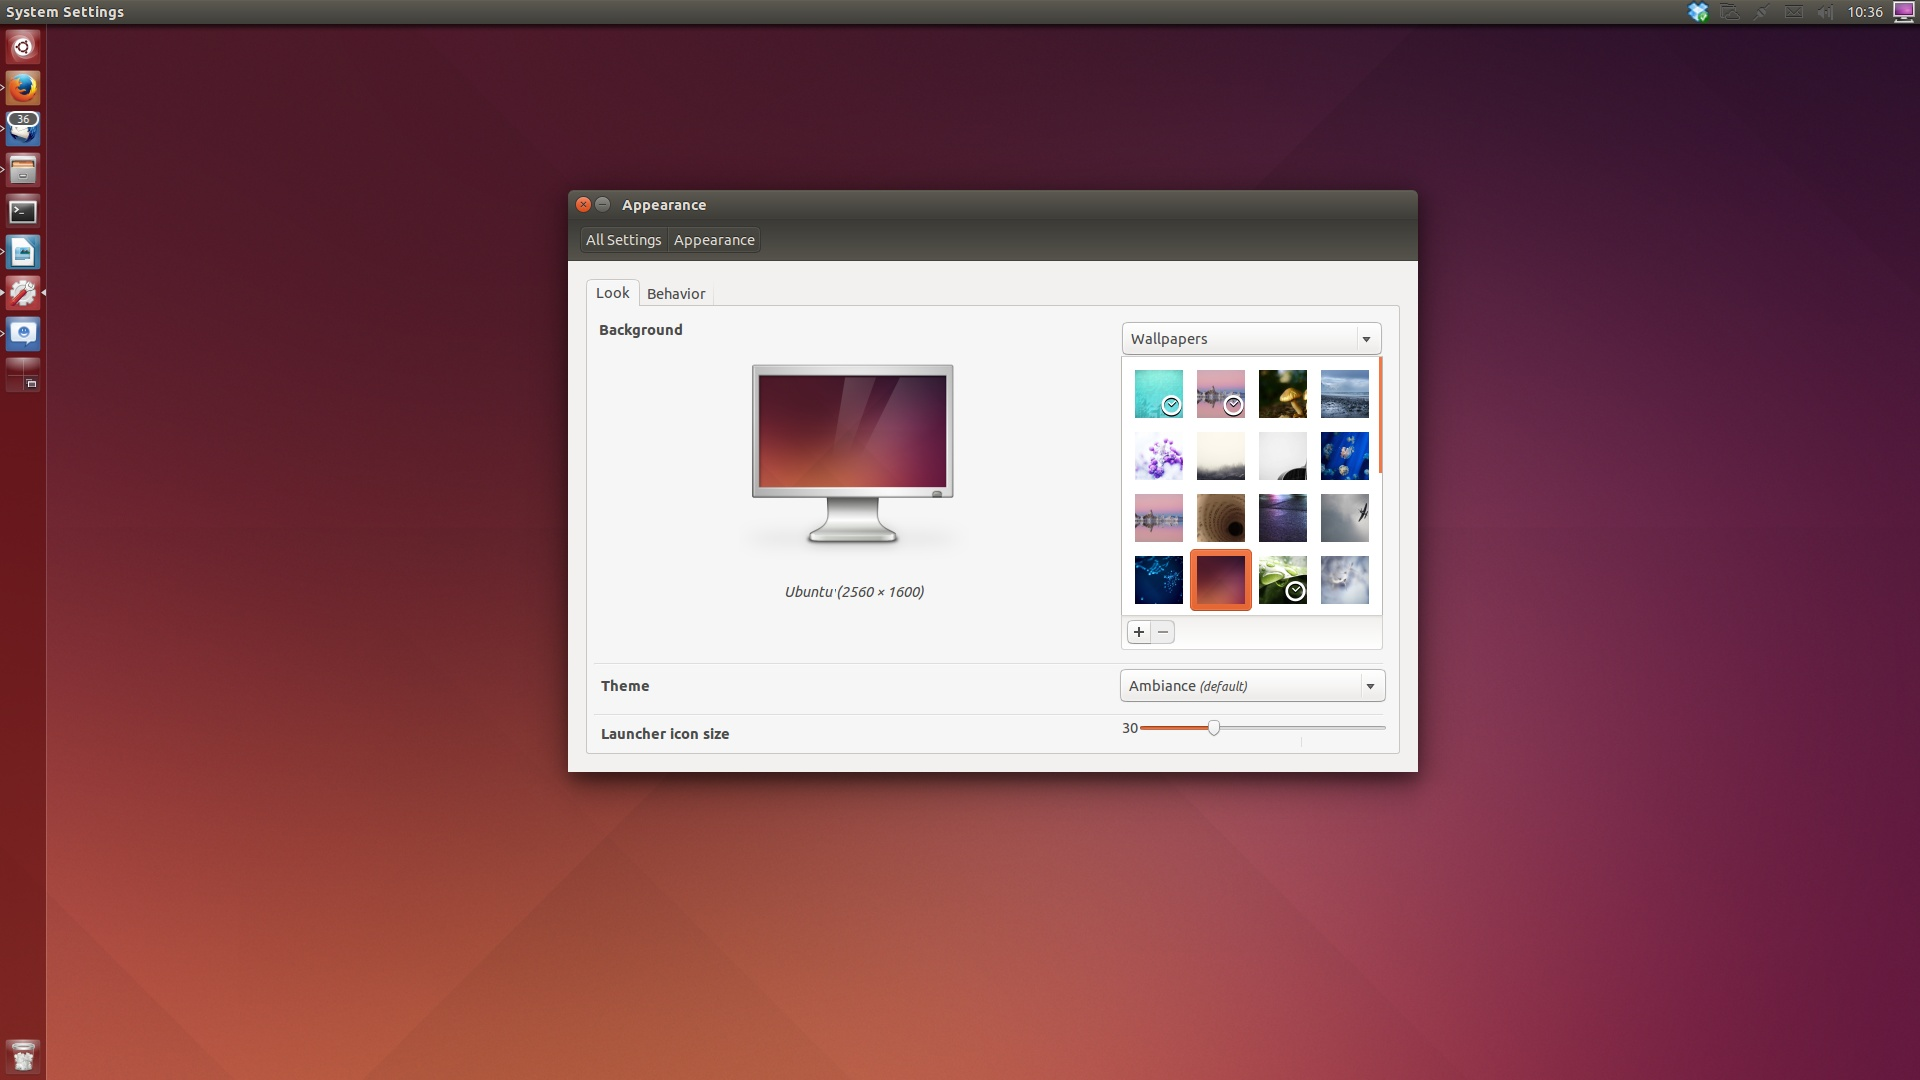 Community Wallpapers Land in Ubuntu 1404 LTS Download the High 1920x1080